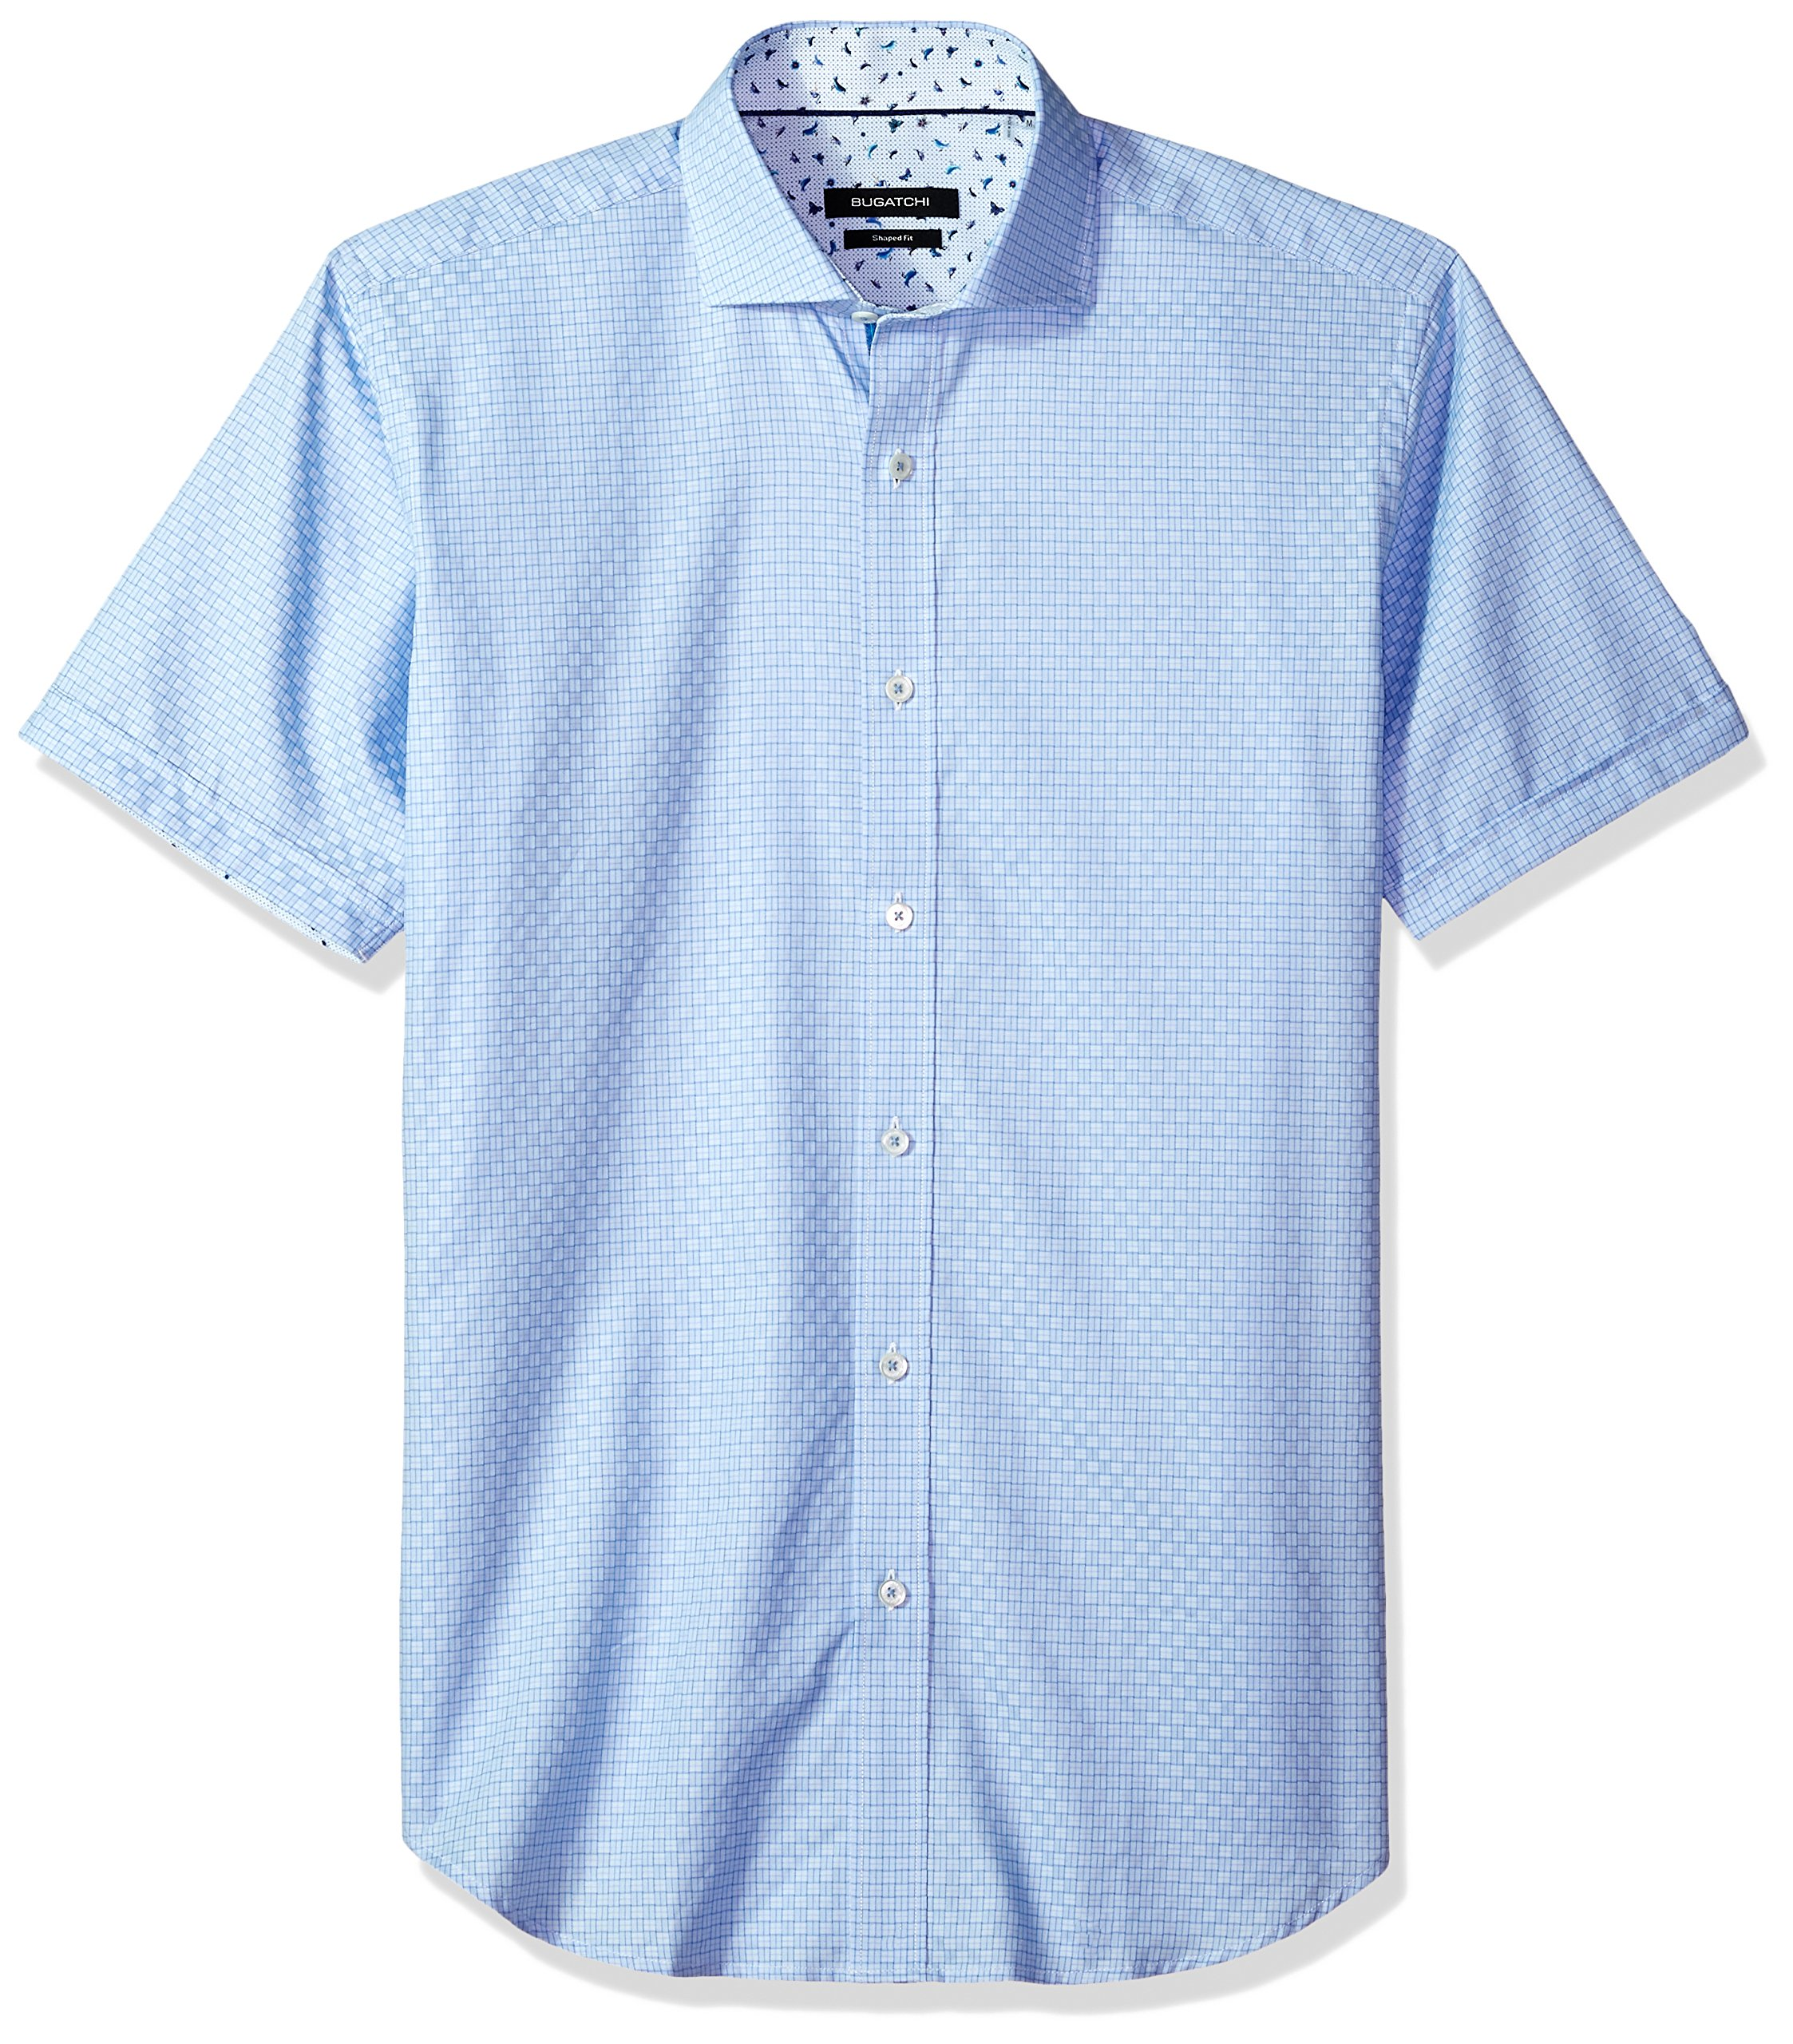 Bugatchi Men's Fitted Soft Finish Point Collar Short Sleeve Shirt, Classic Blue, L